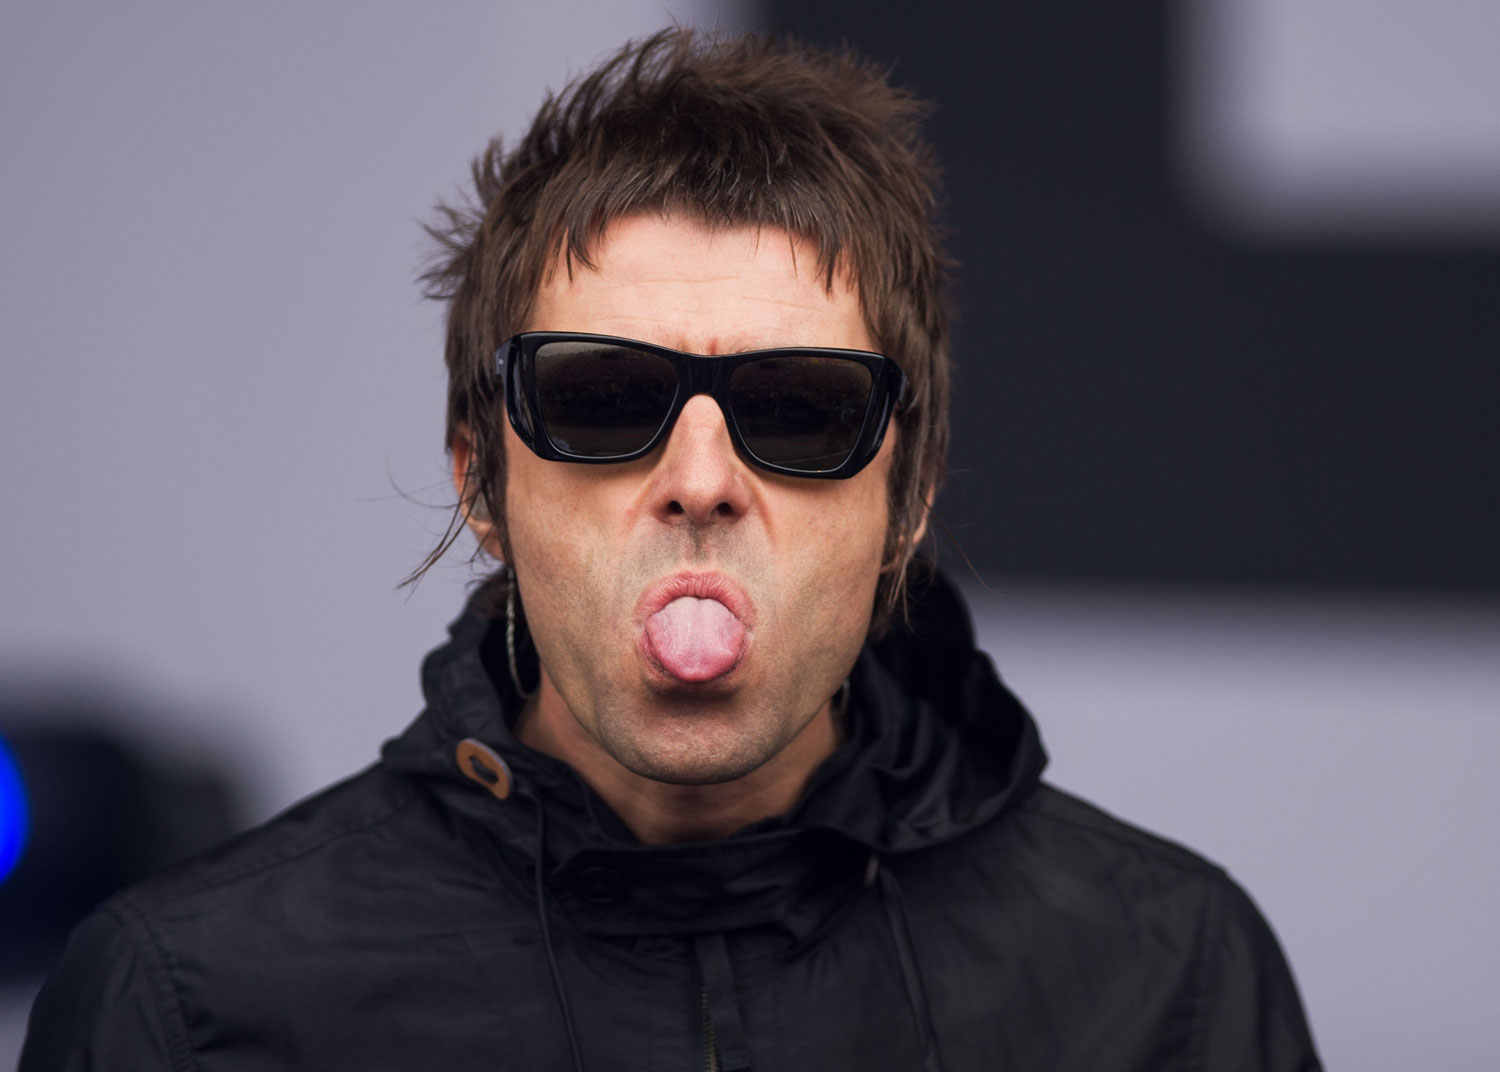 Liam Gallagher says he has to do his own tea because of illegal downloads